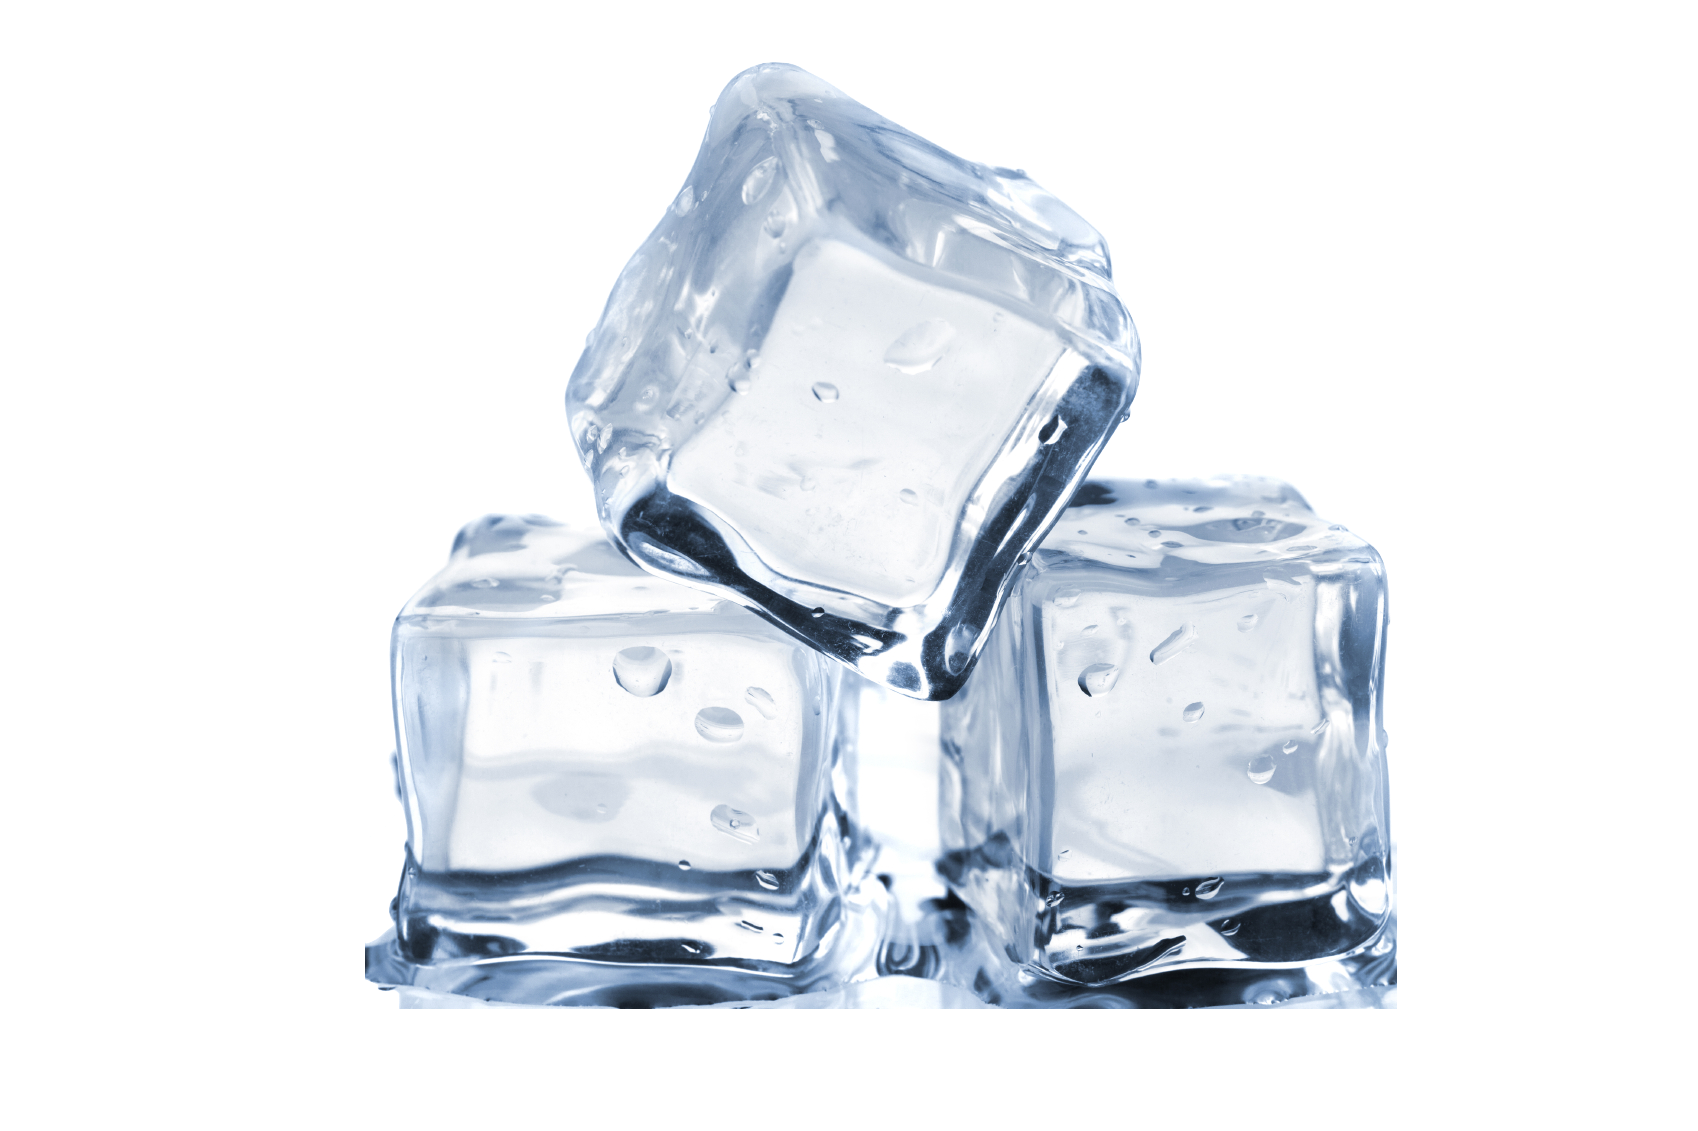 Png image purepng free. Ice clipart ice cycle